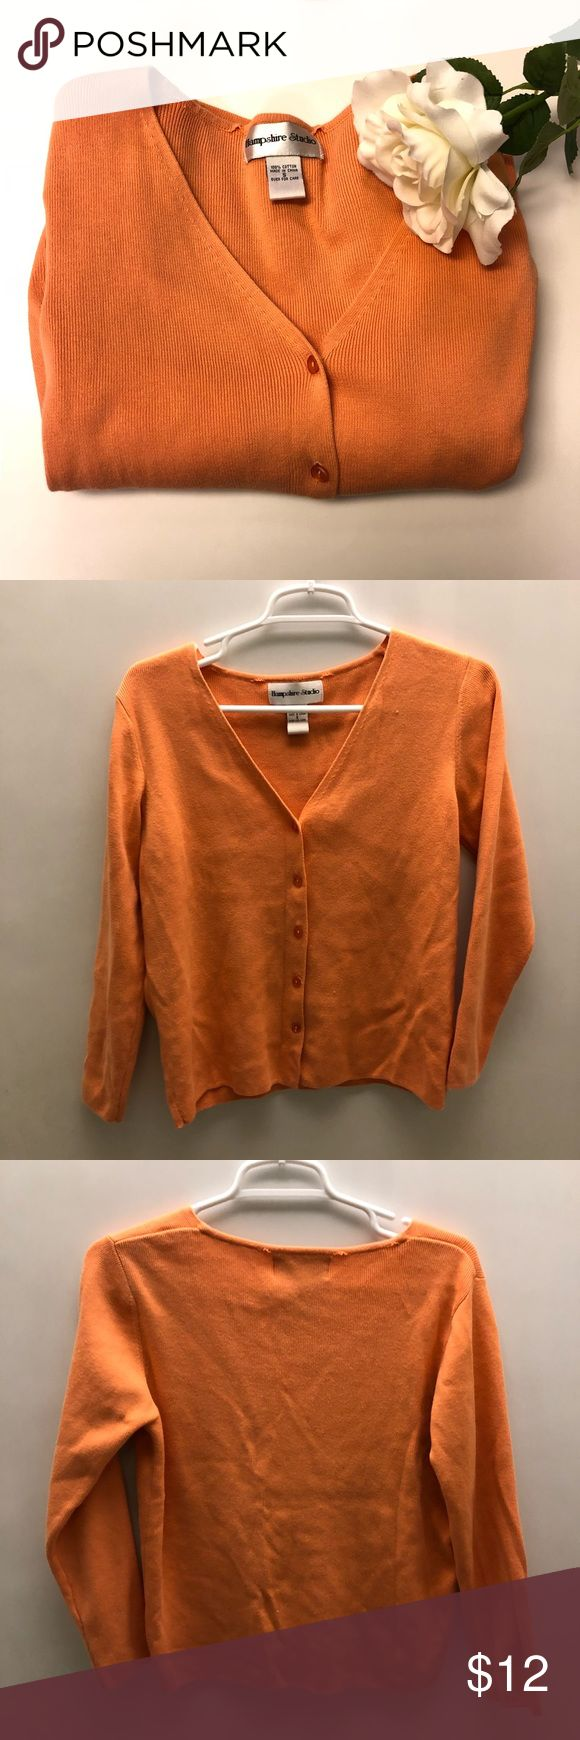 (Hampshire Studios) Orange Cardigan This orange cardigan is in good condition. Light piling on the Cardigan. No holes or stains. Still great to wear!  Measurements:  Bust: 18 1/2 in Length:20 3/4 in  Please do not hesitate to ask any questions!   Same day to next day shipping!  Added: 12/28/17  Storage #: R-51 Hampshire Studios Sweaters Cardigans